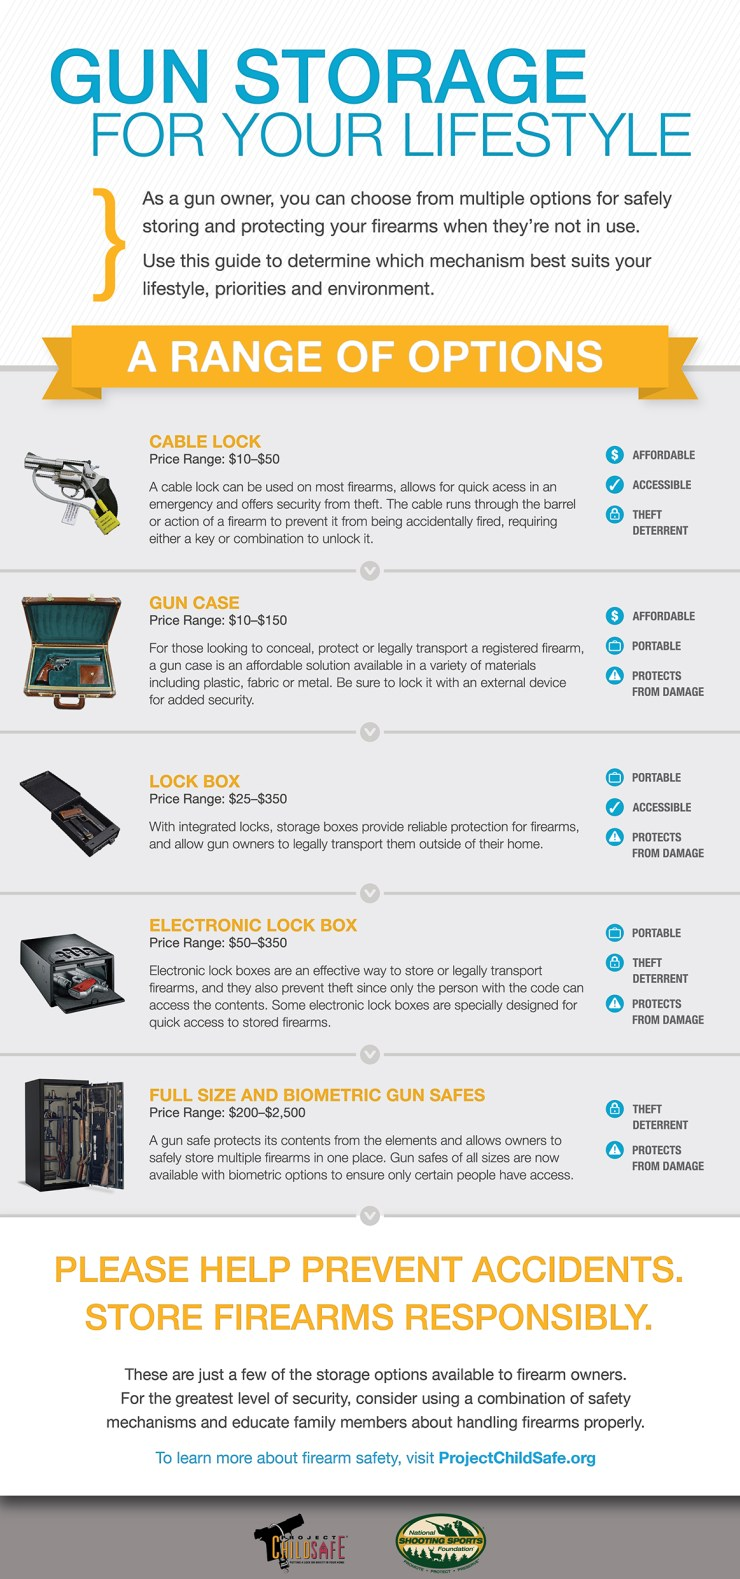 A Range of Gun Storage Options for Your Lifestyle Infographic